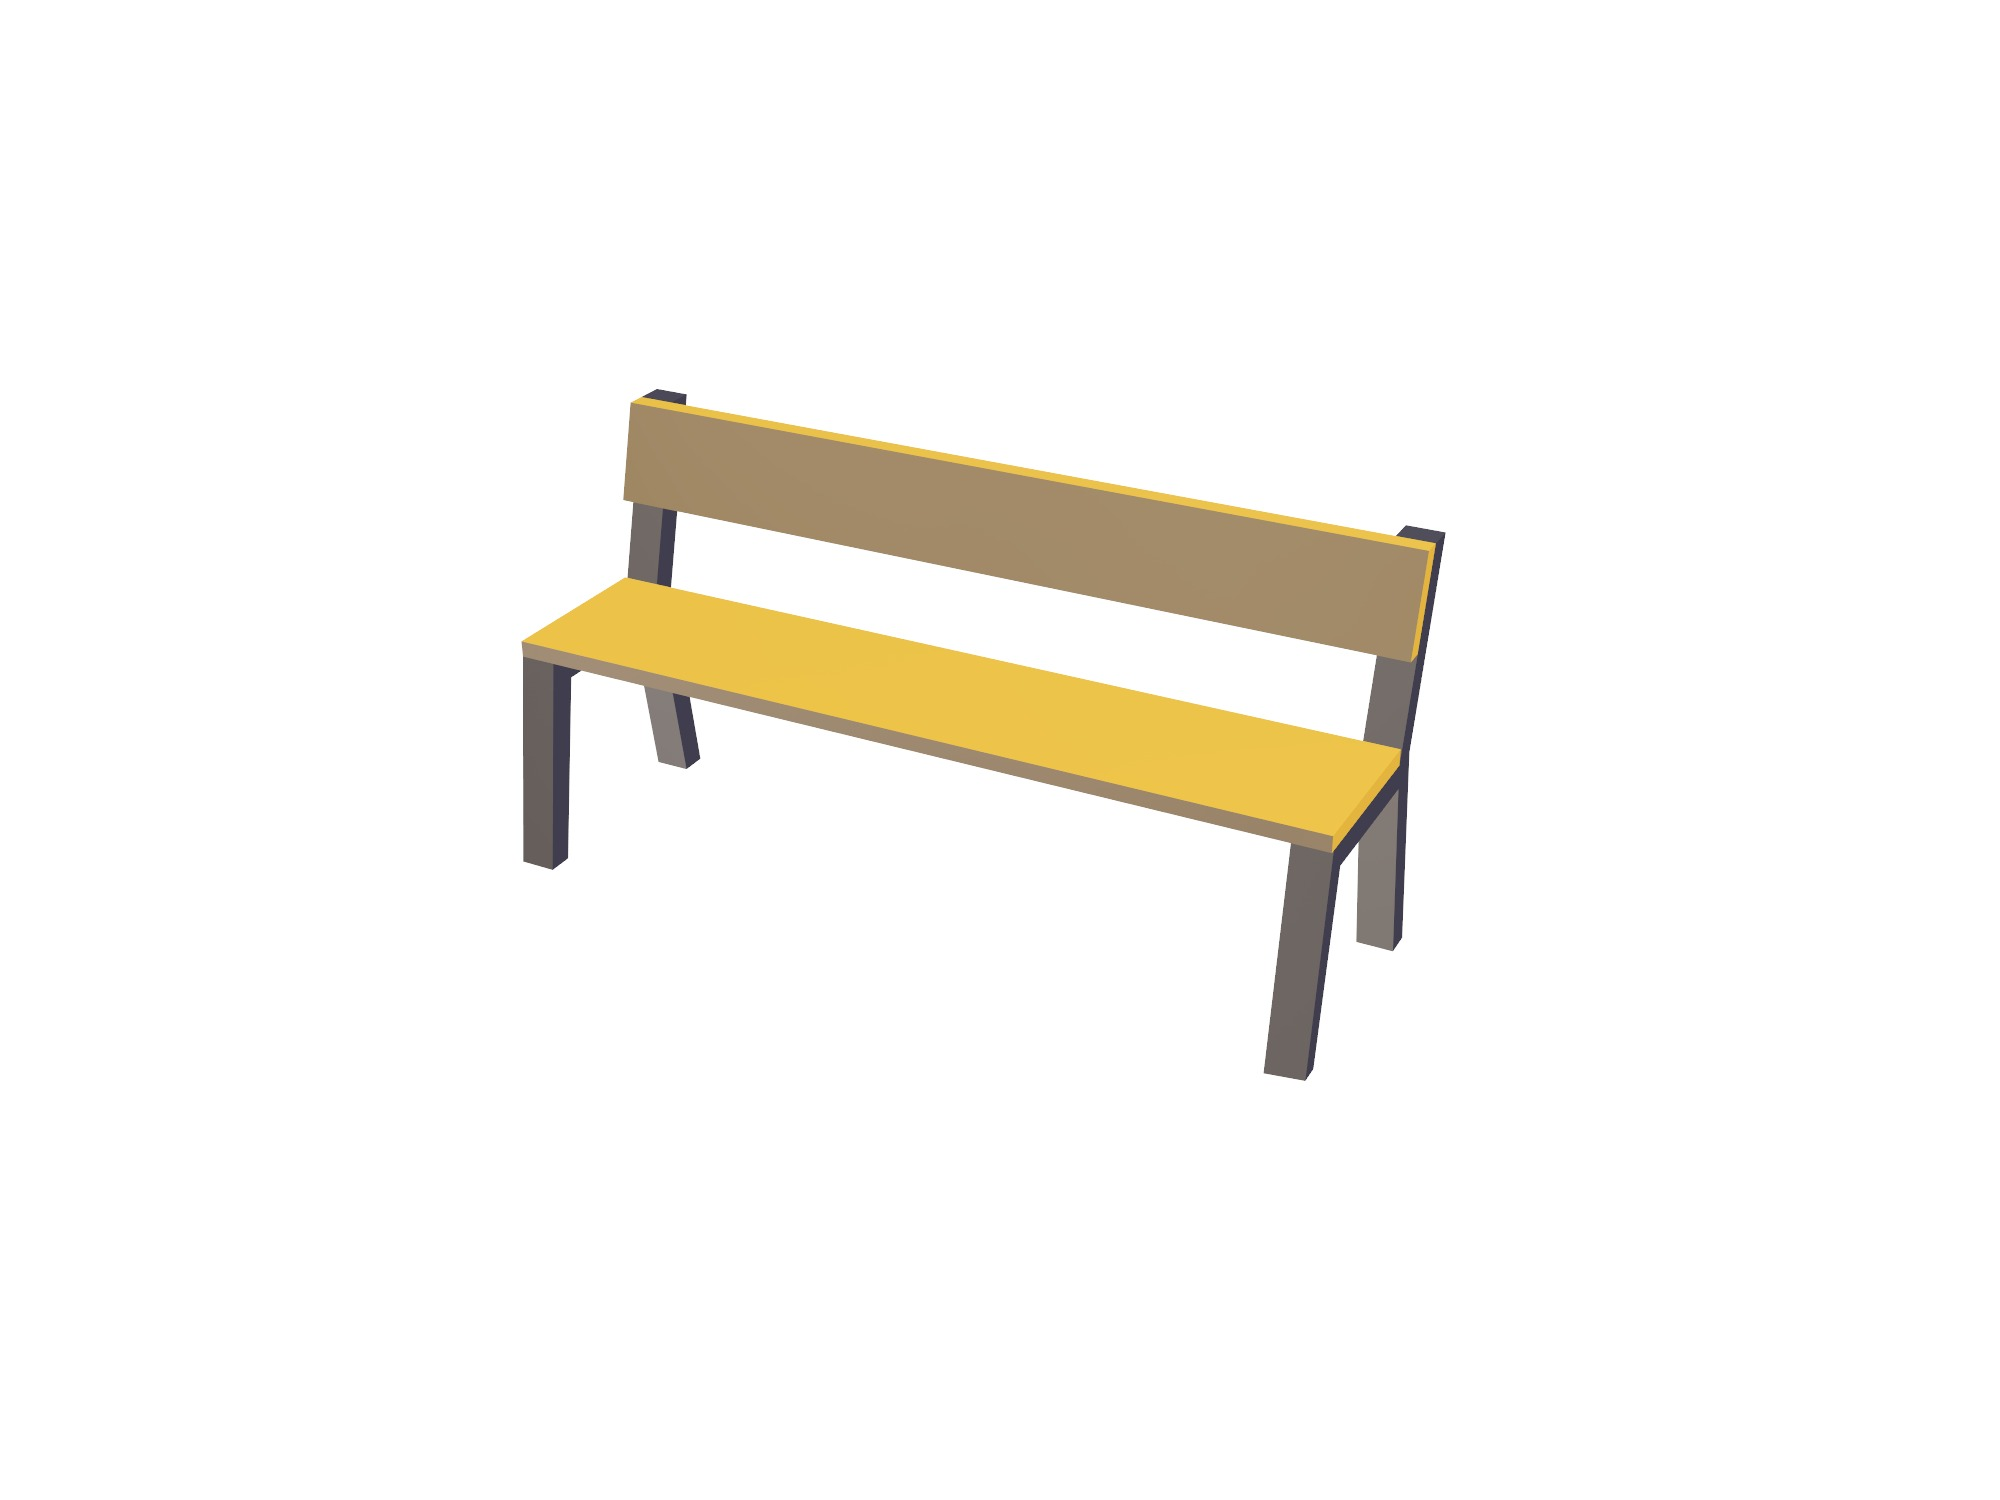 Bench - 3D design by Vectary assets Jun 3, 2018